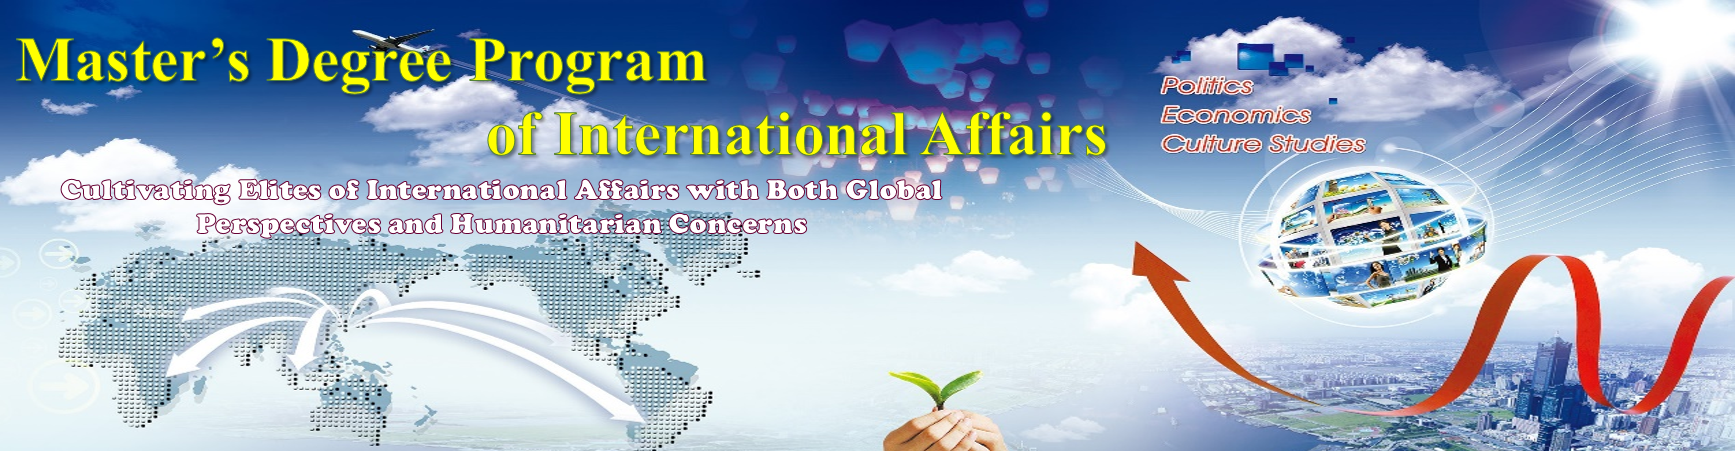 Master's Degree Program of International Affairs